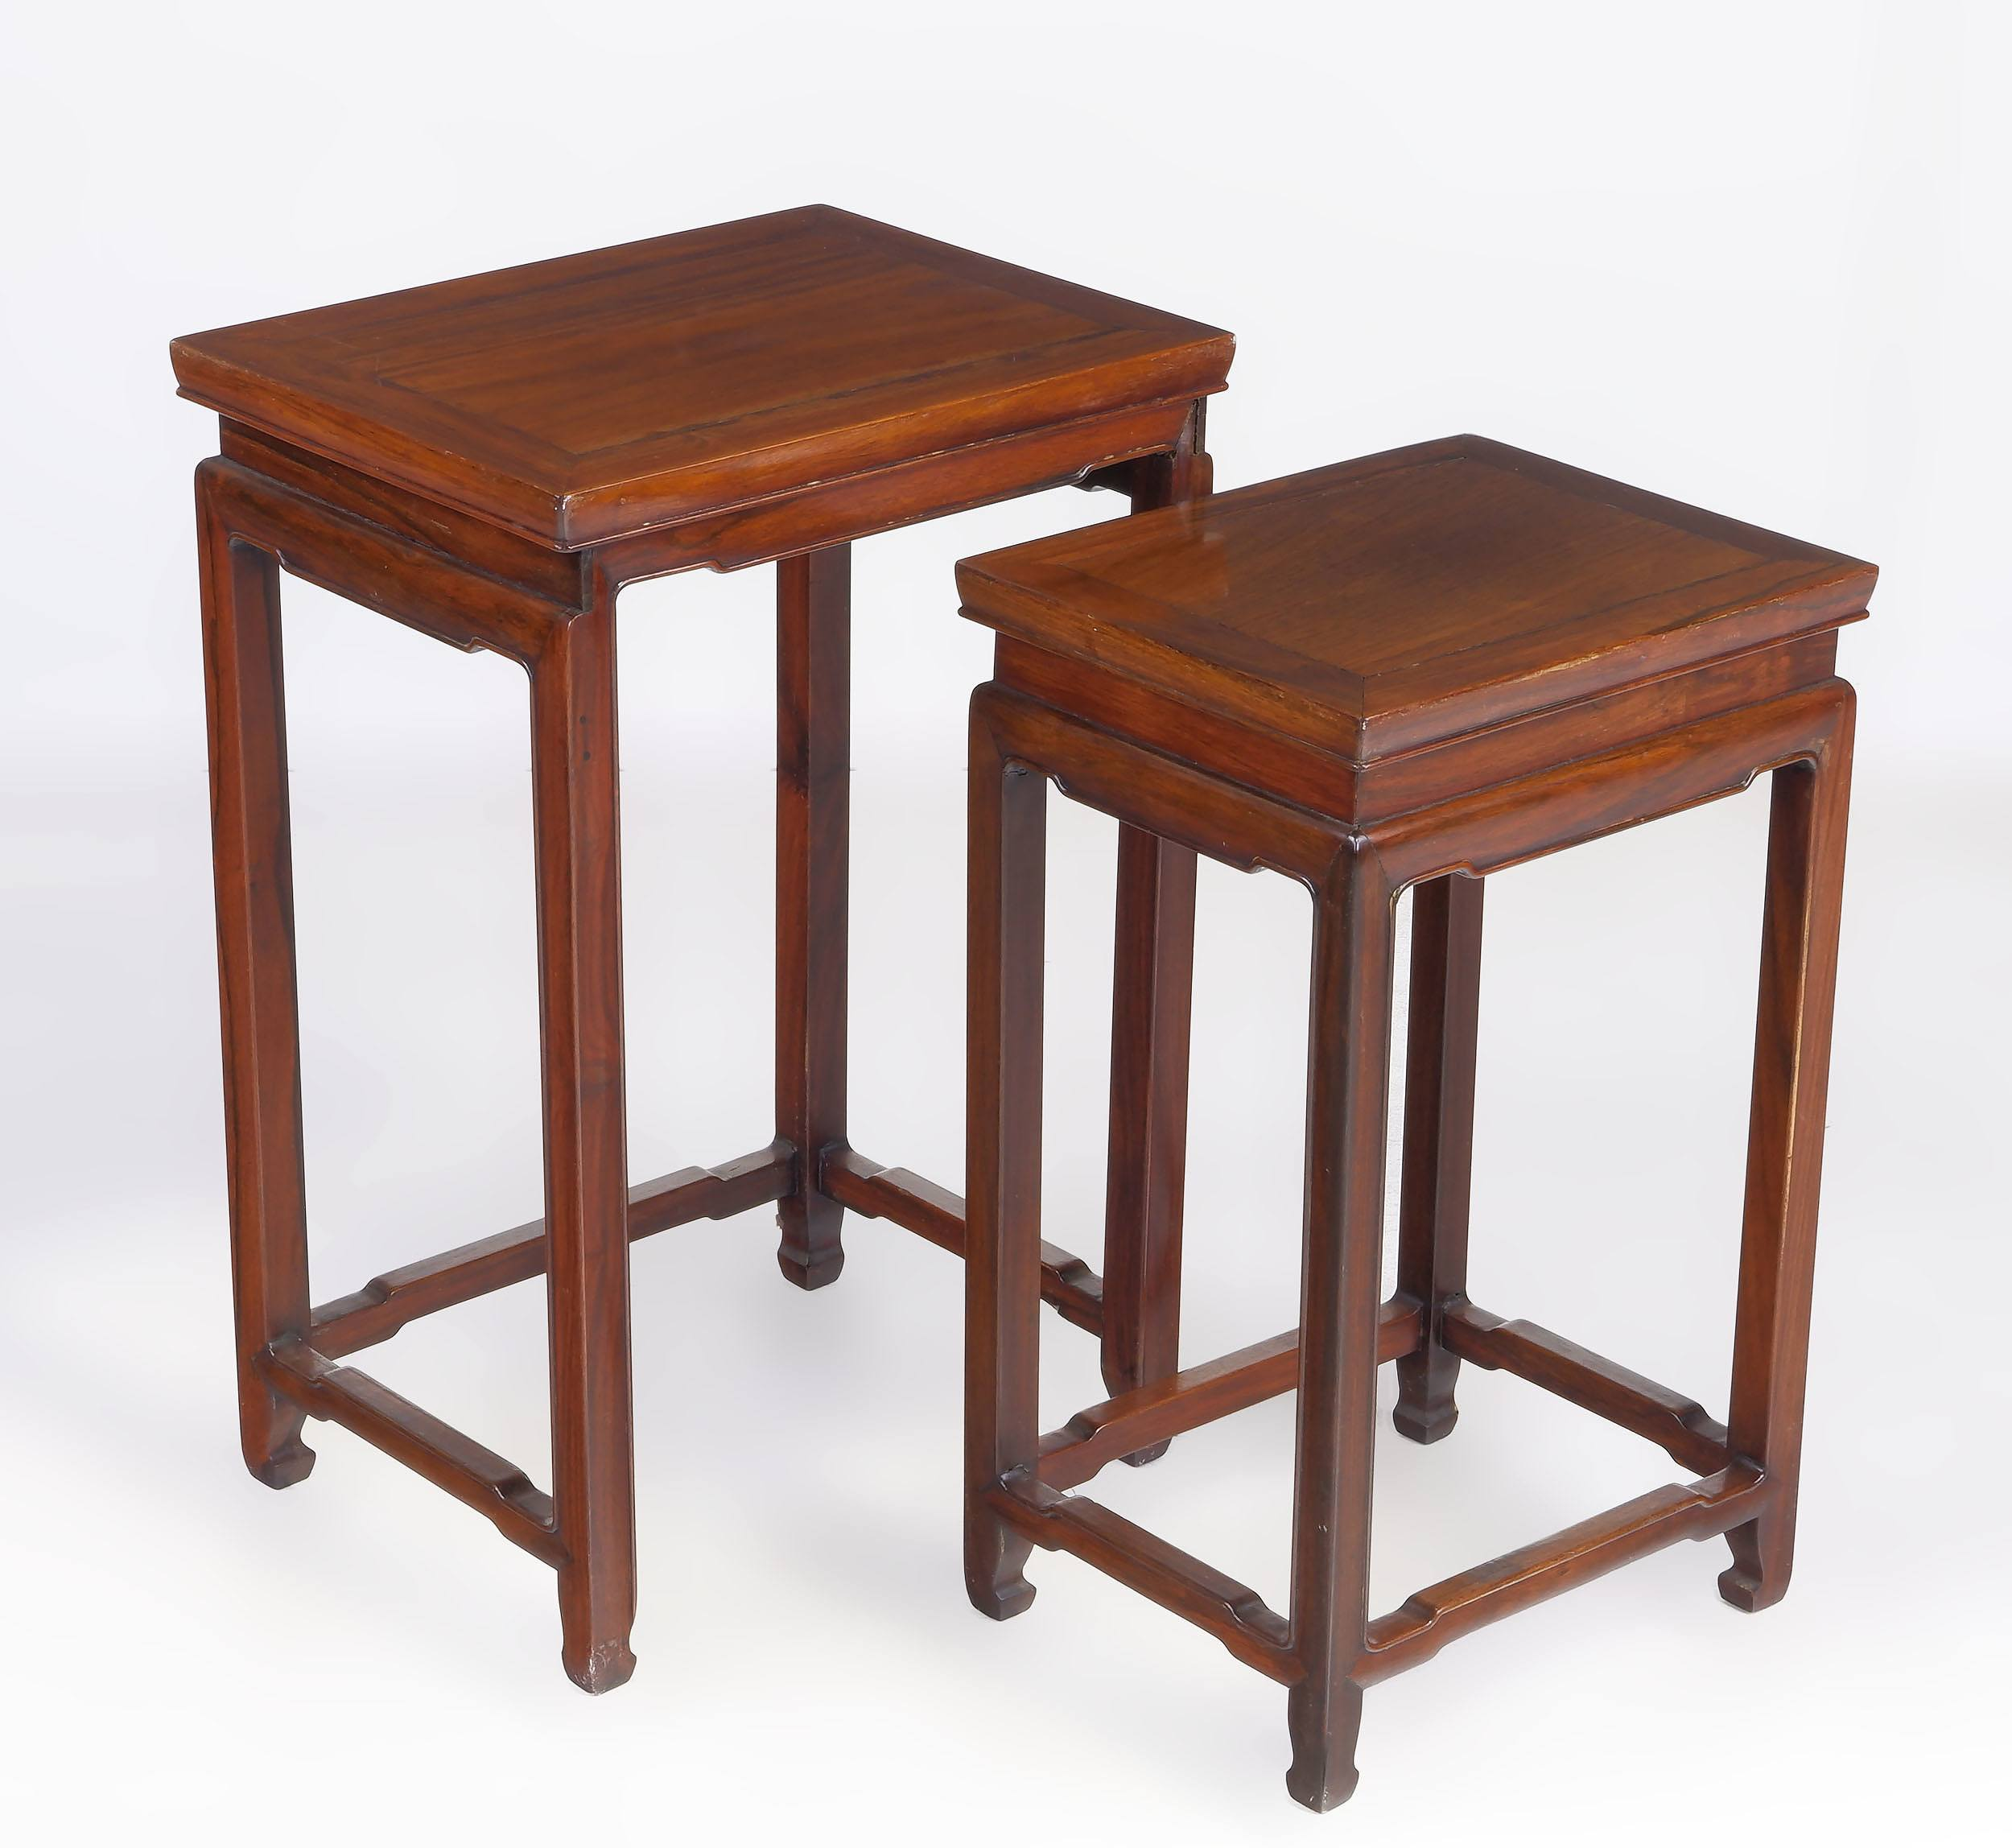 'Two Chinese Rosewood Nesting Tables Mid 20th Century'